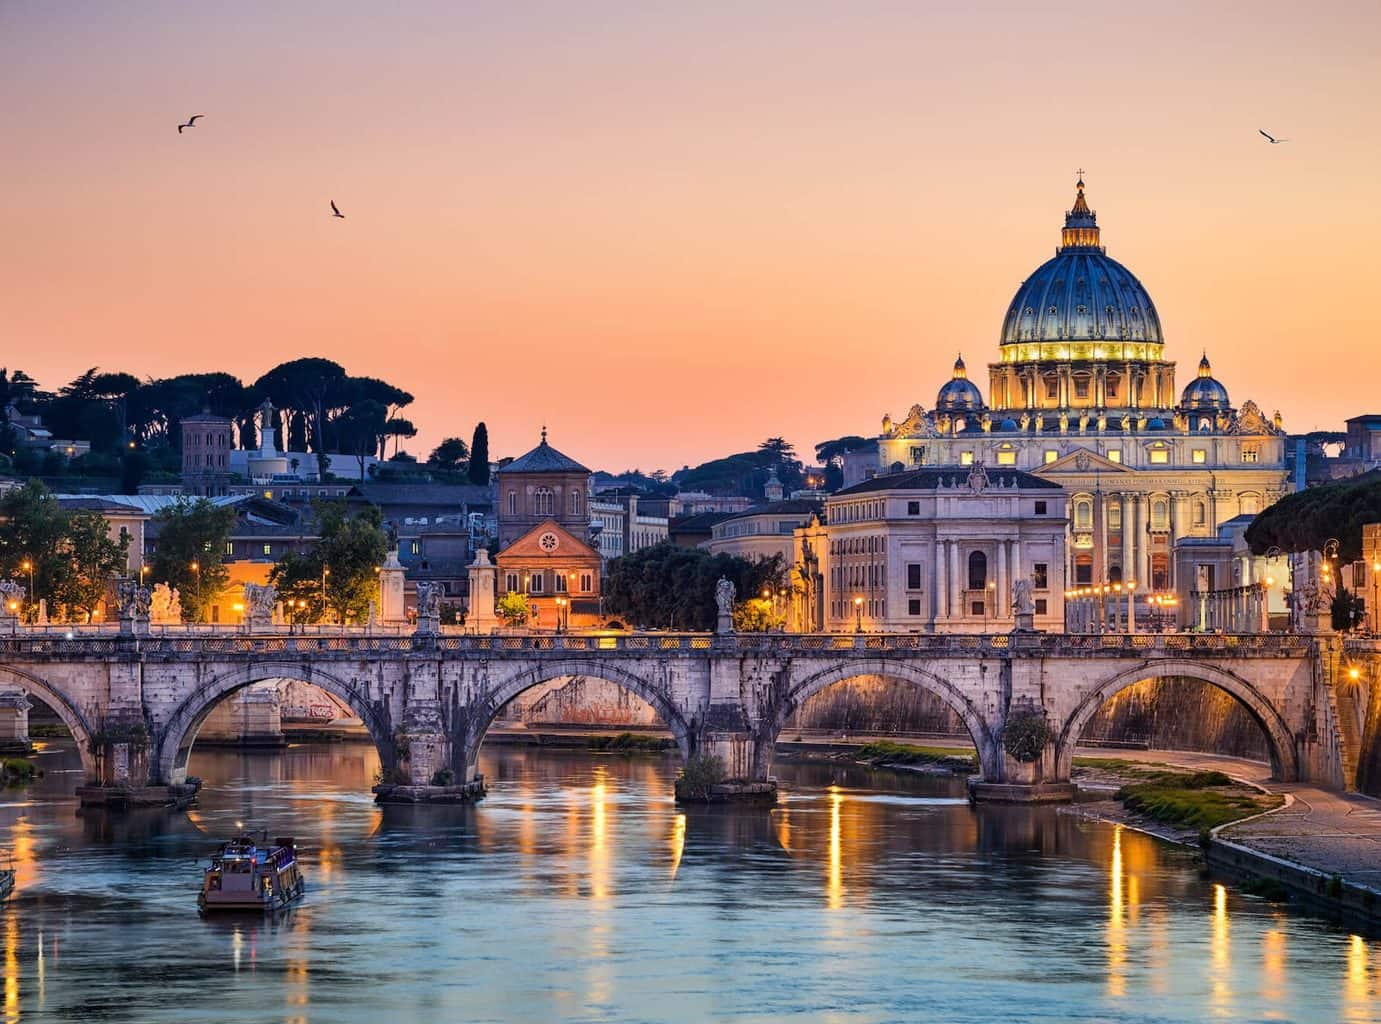 Luxury Rome Holiday - Bridge, river and architecture shot